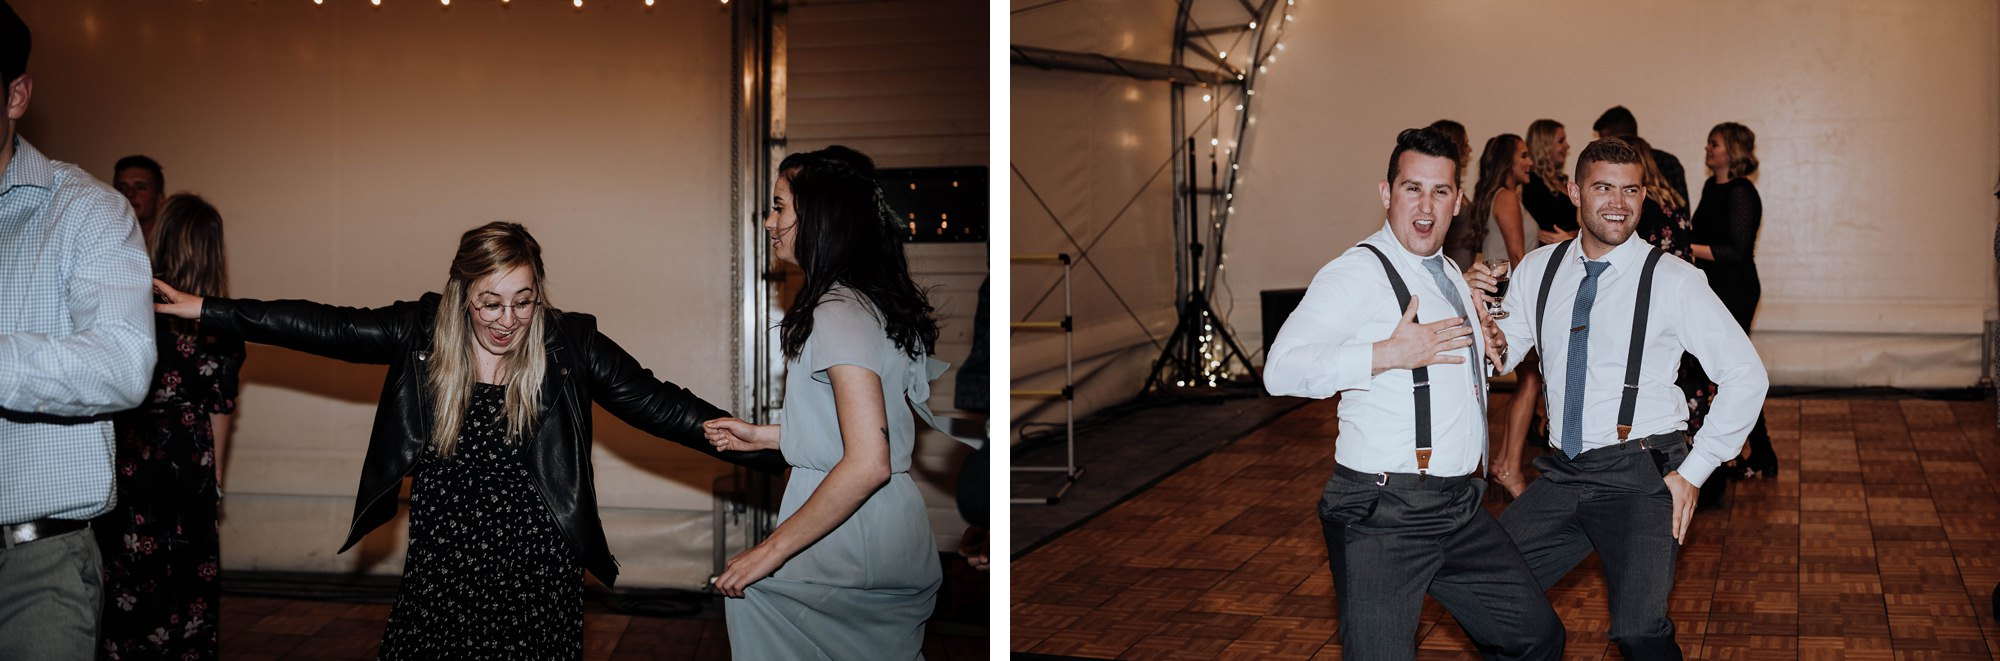 indoor ceremony for winter wedding captured at the river spirit golf course in Calgary